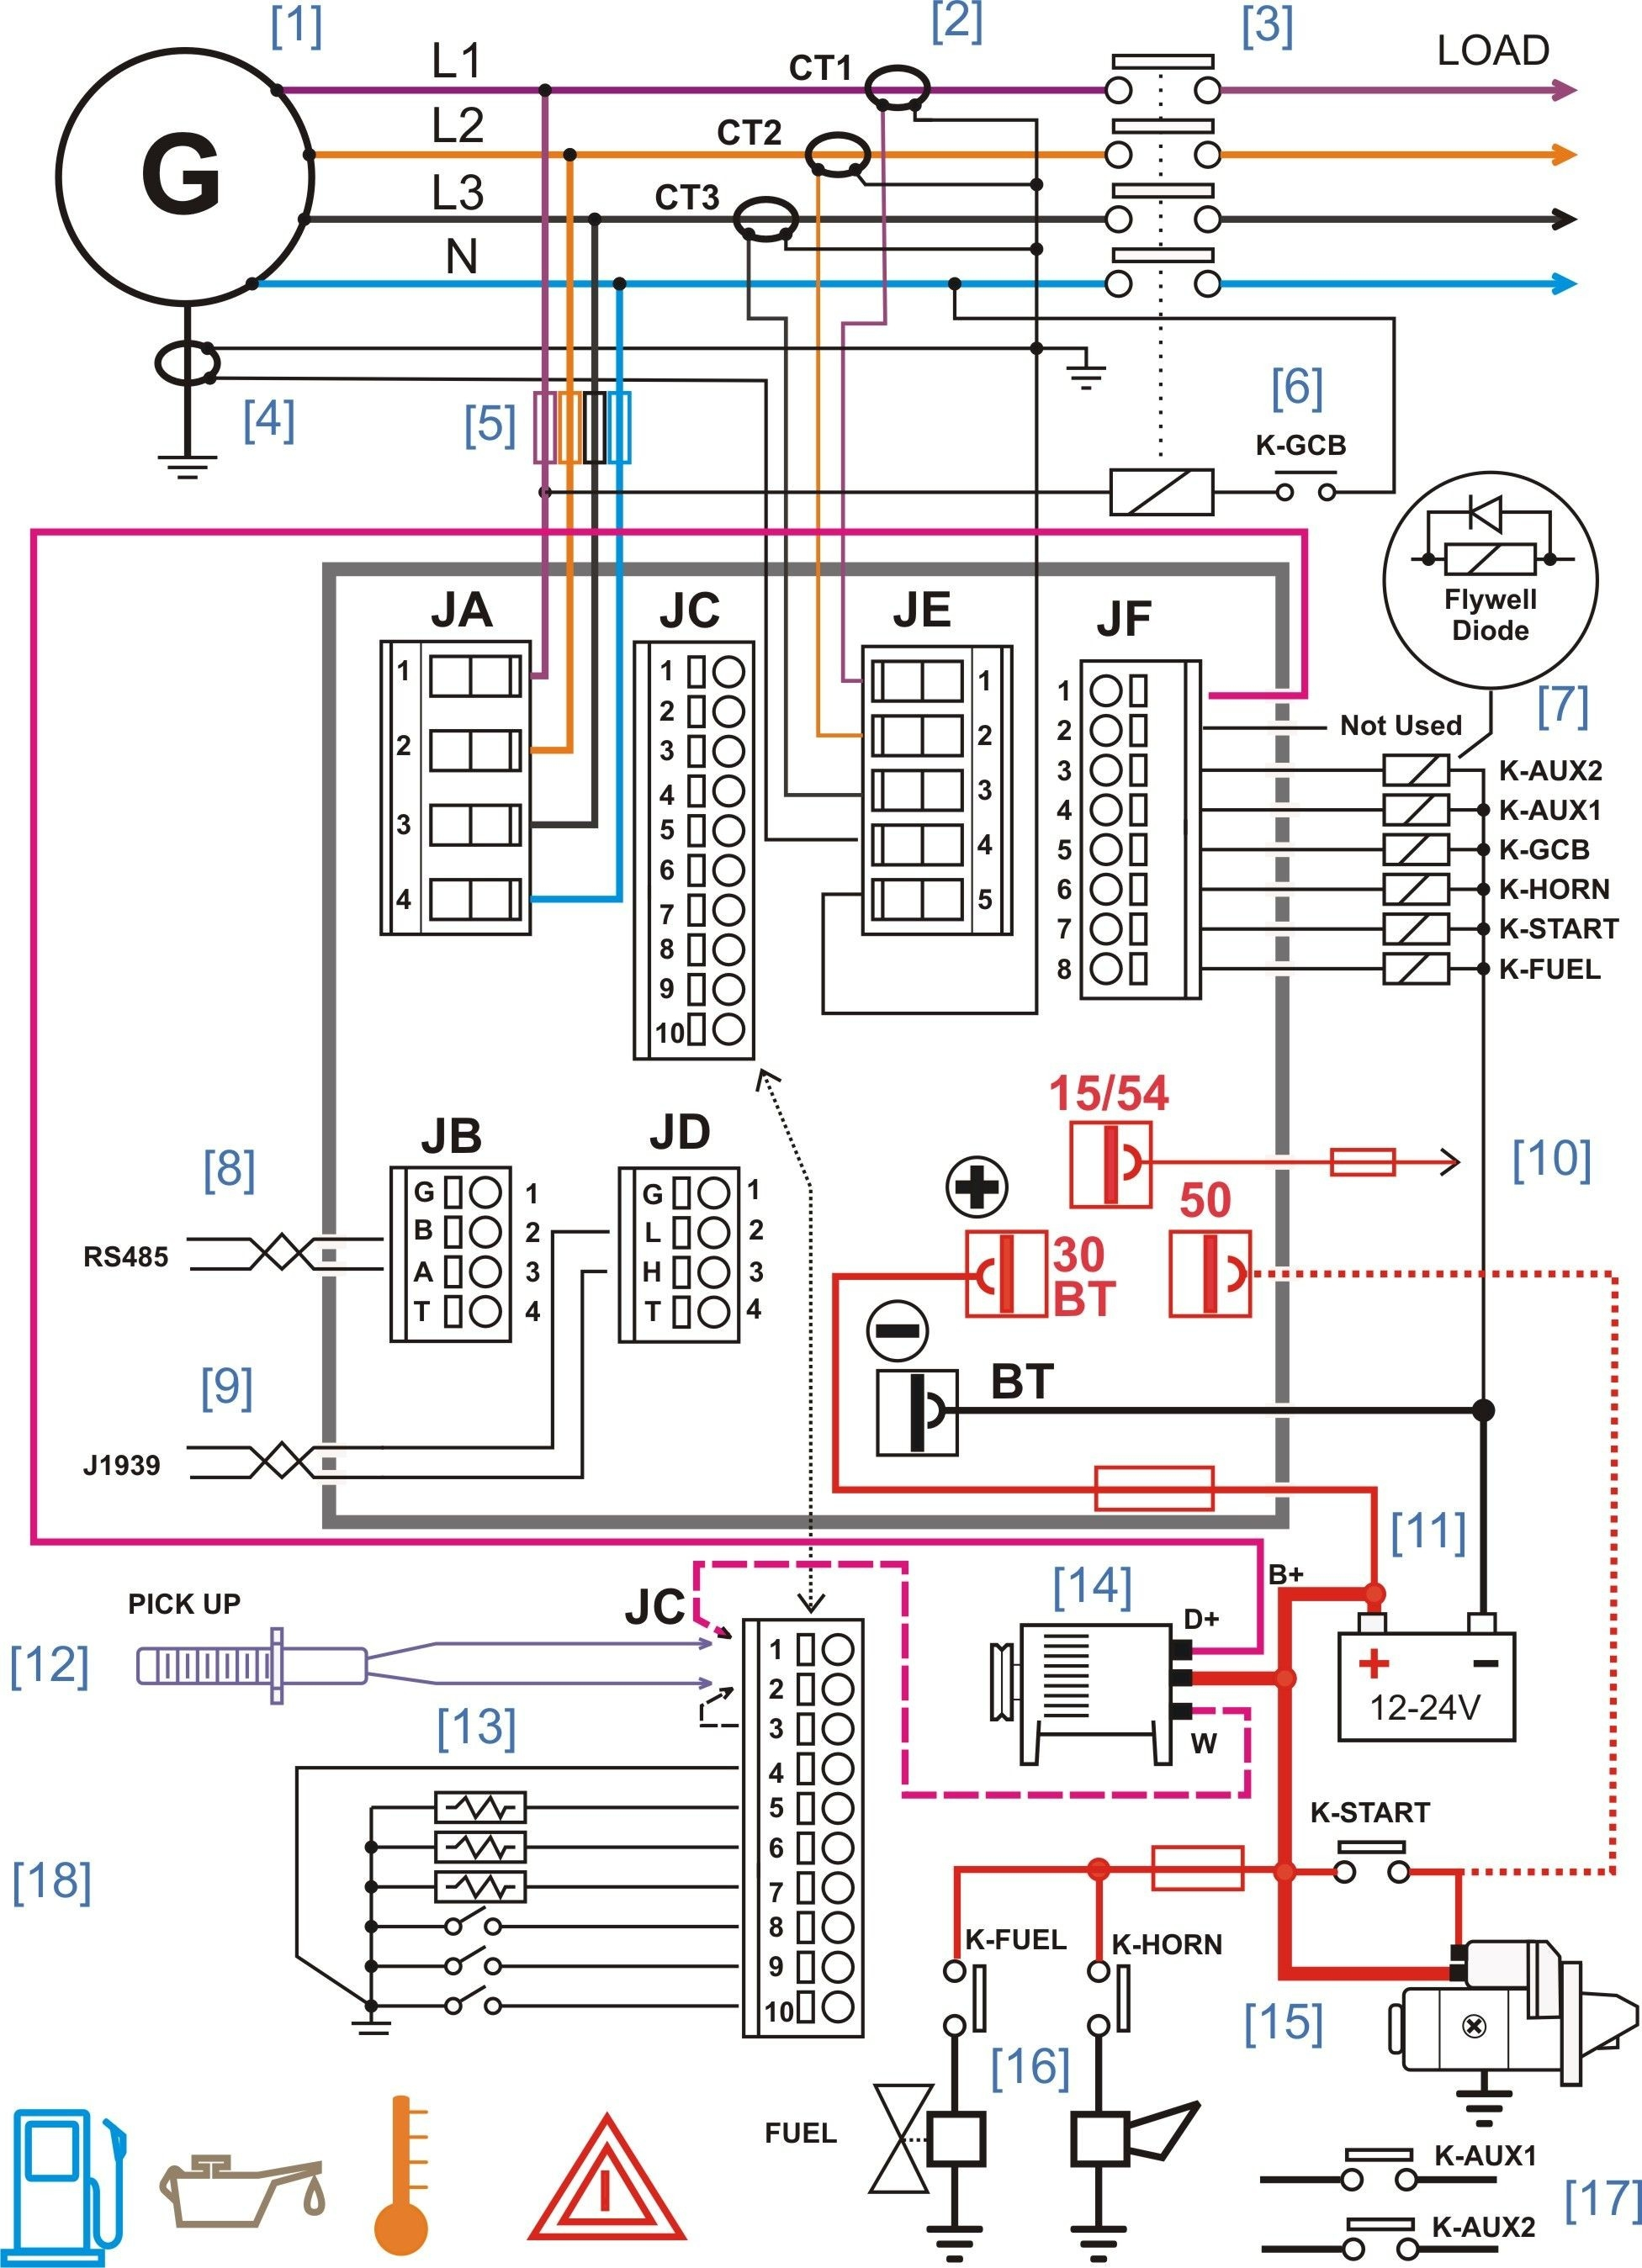 electrical control panel wiring diagram Download-Wiring Diagram for Wolf Generator Best Diesel Generator Control Panel Wiring Diagram 19-i